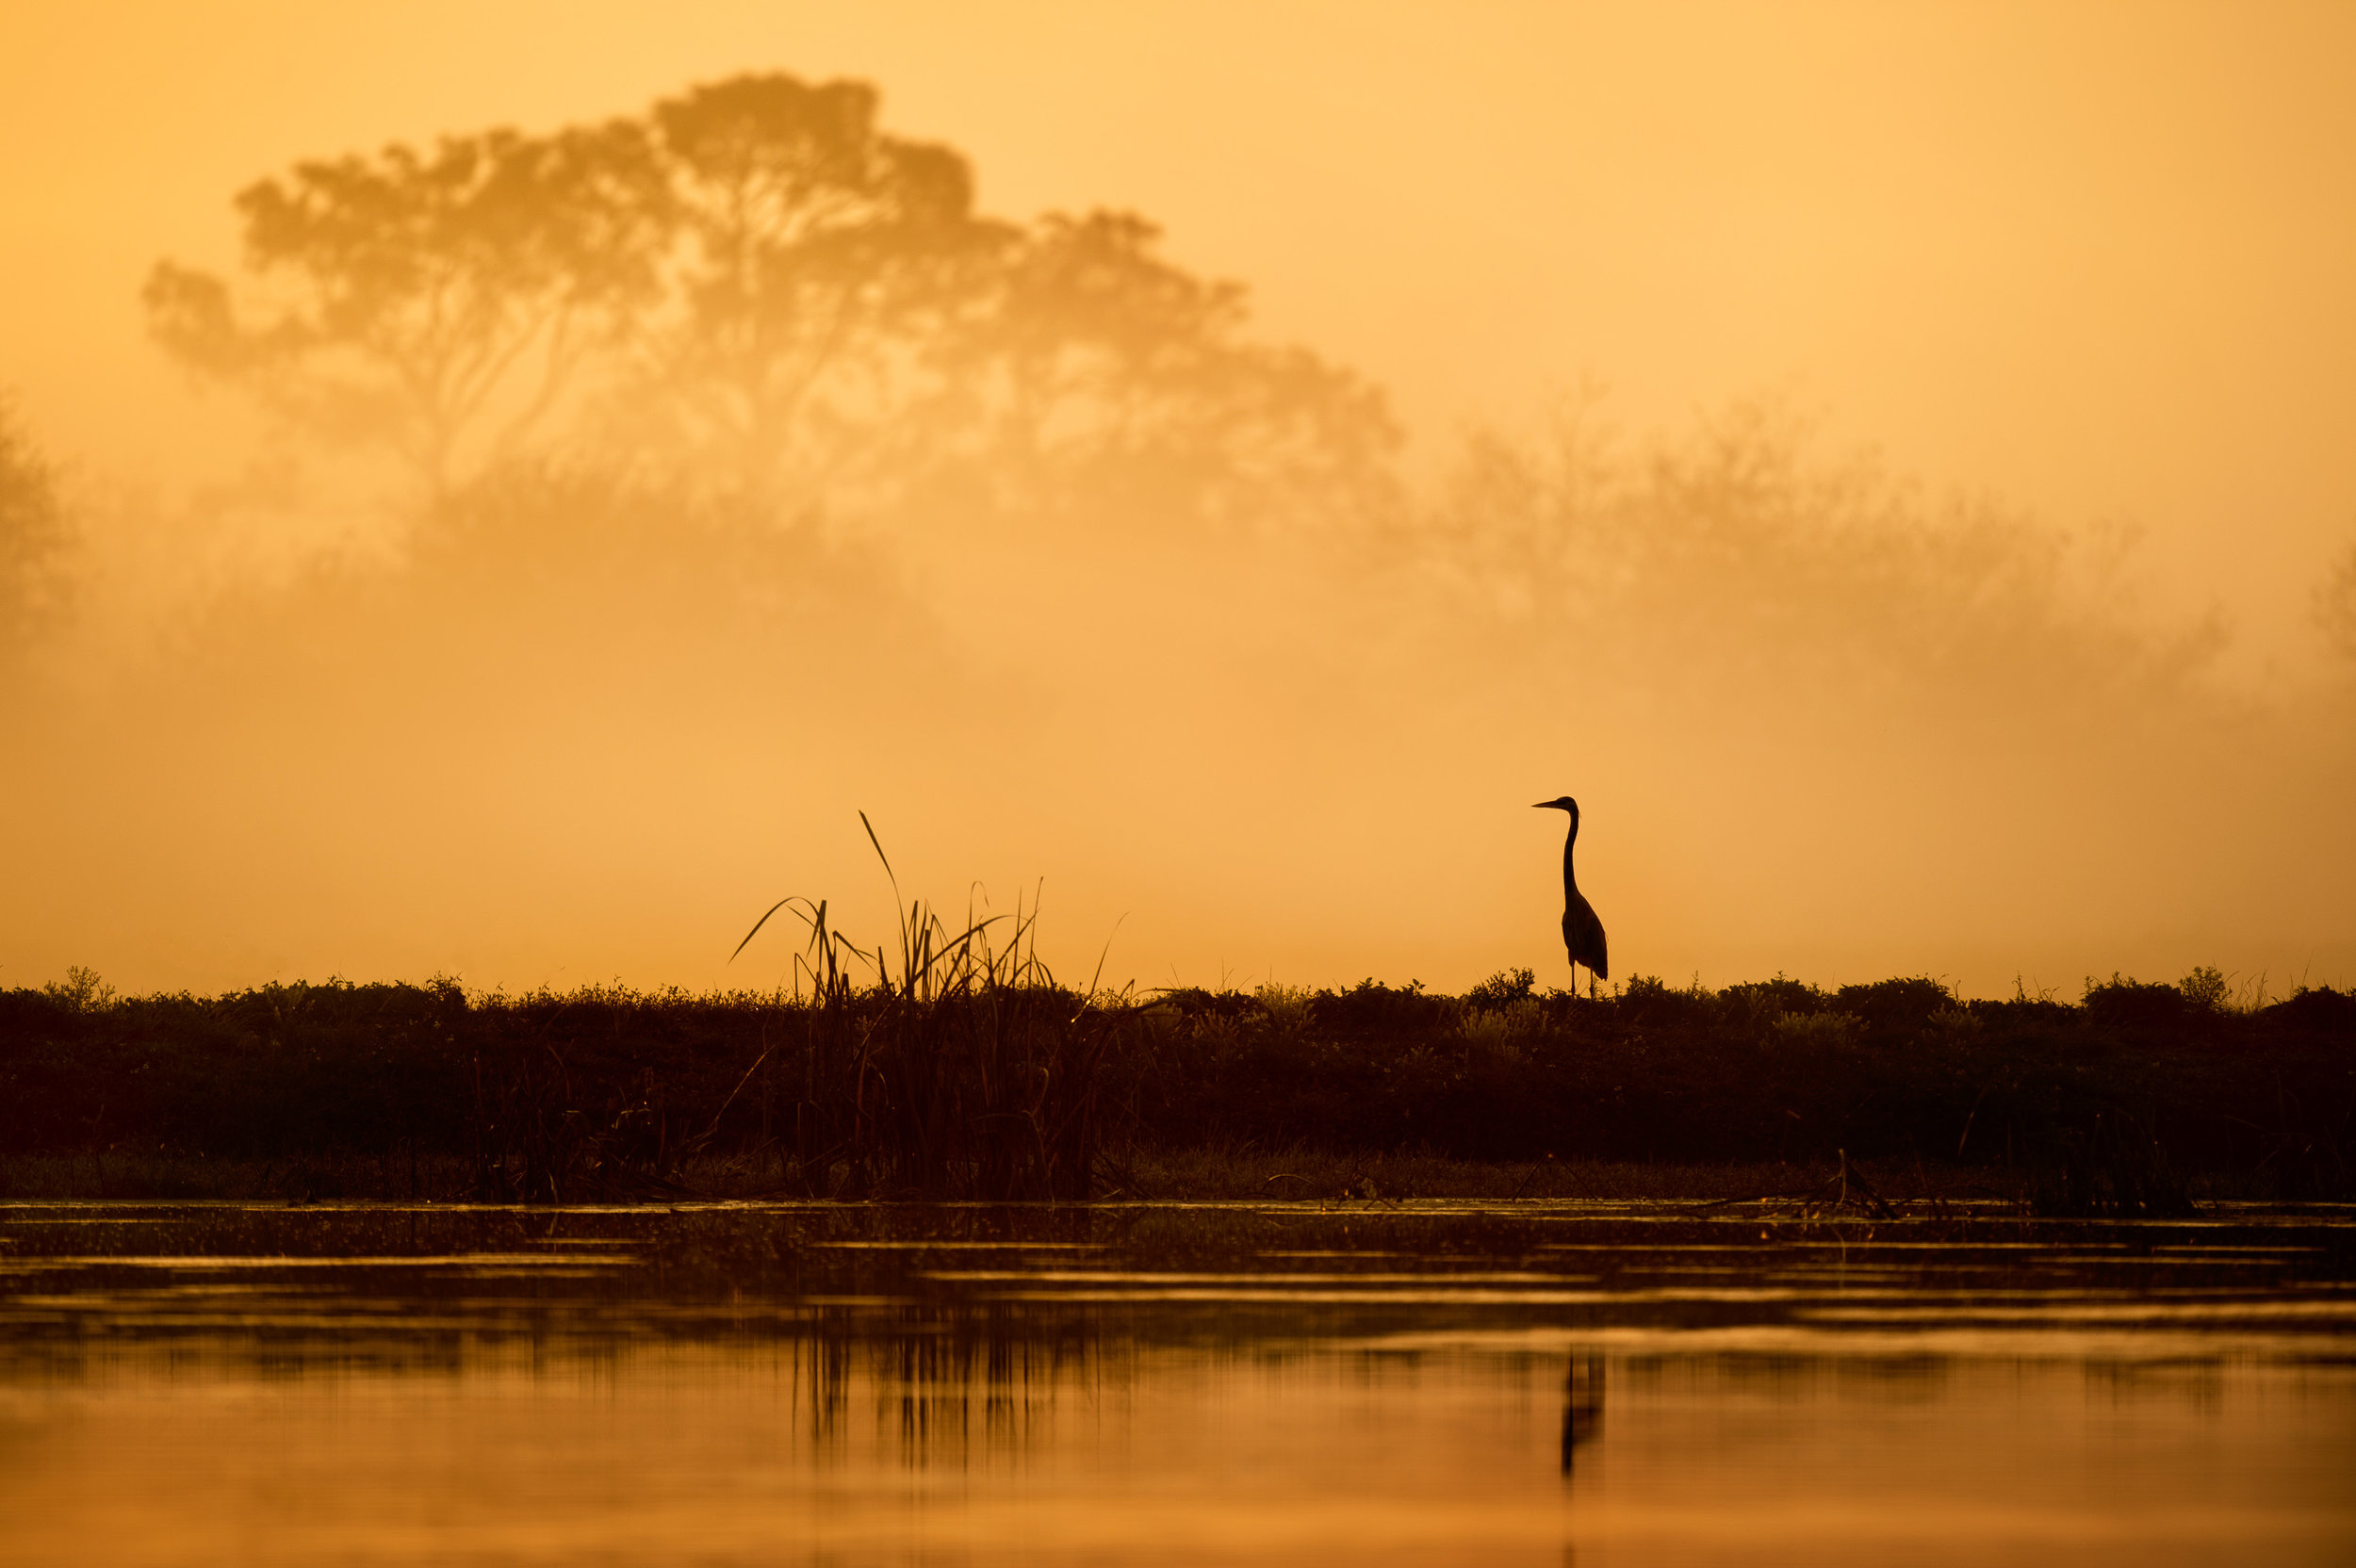 A Great Blue Heron silhouetted against the foggy morning trees, moments after sunrise.